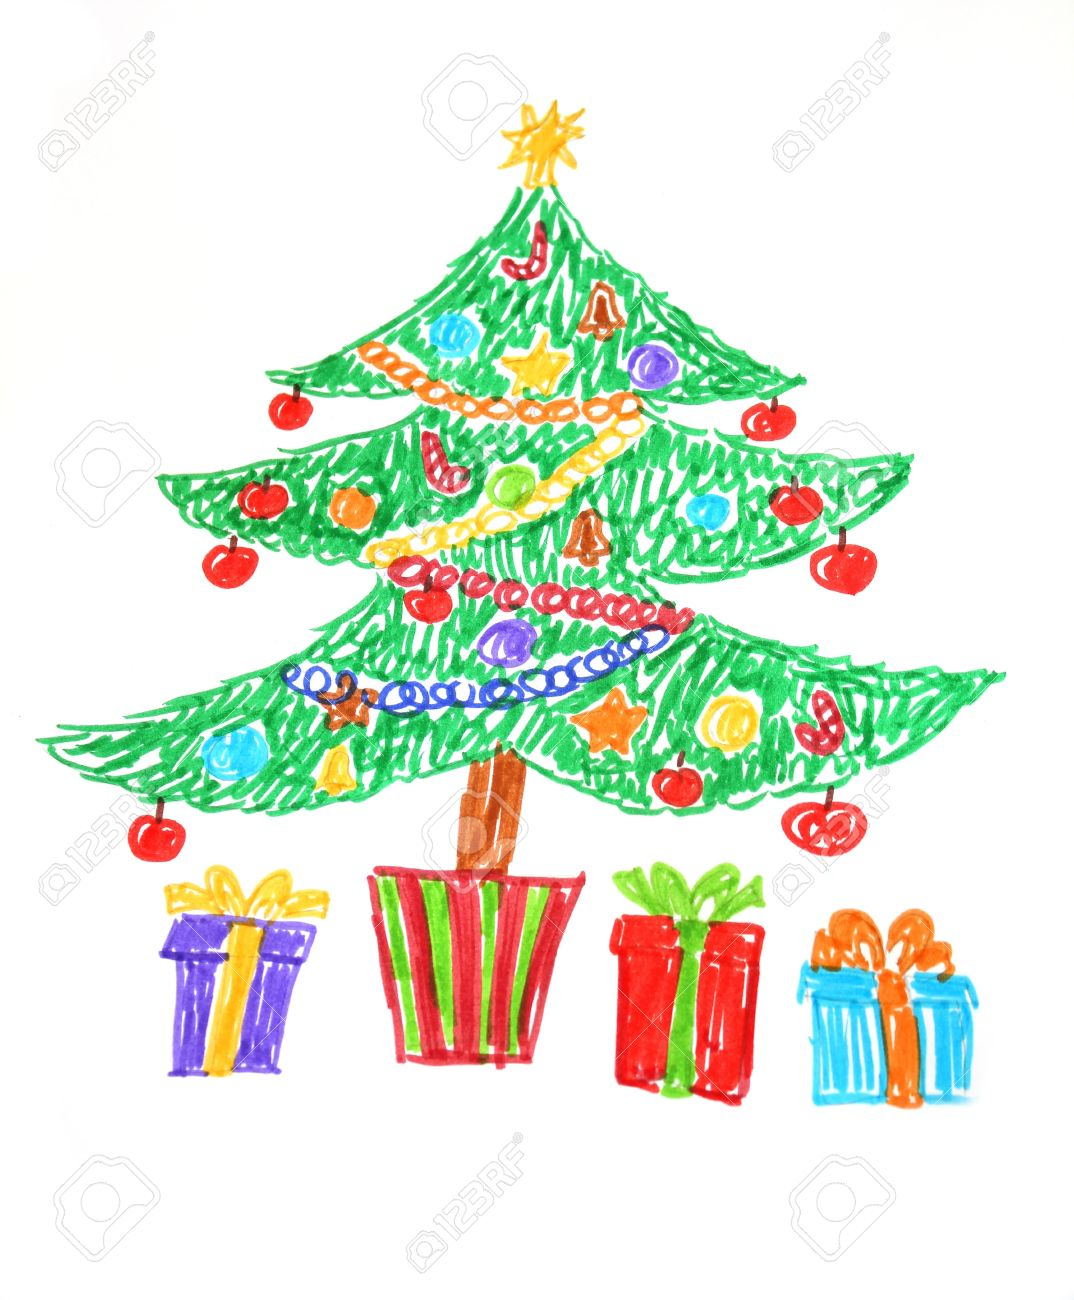 Colorful Christmas Ornaments Drawings.Colorful Drawing Of Decorated Christmas Tree And Presents Child